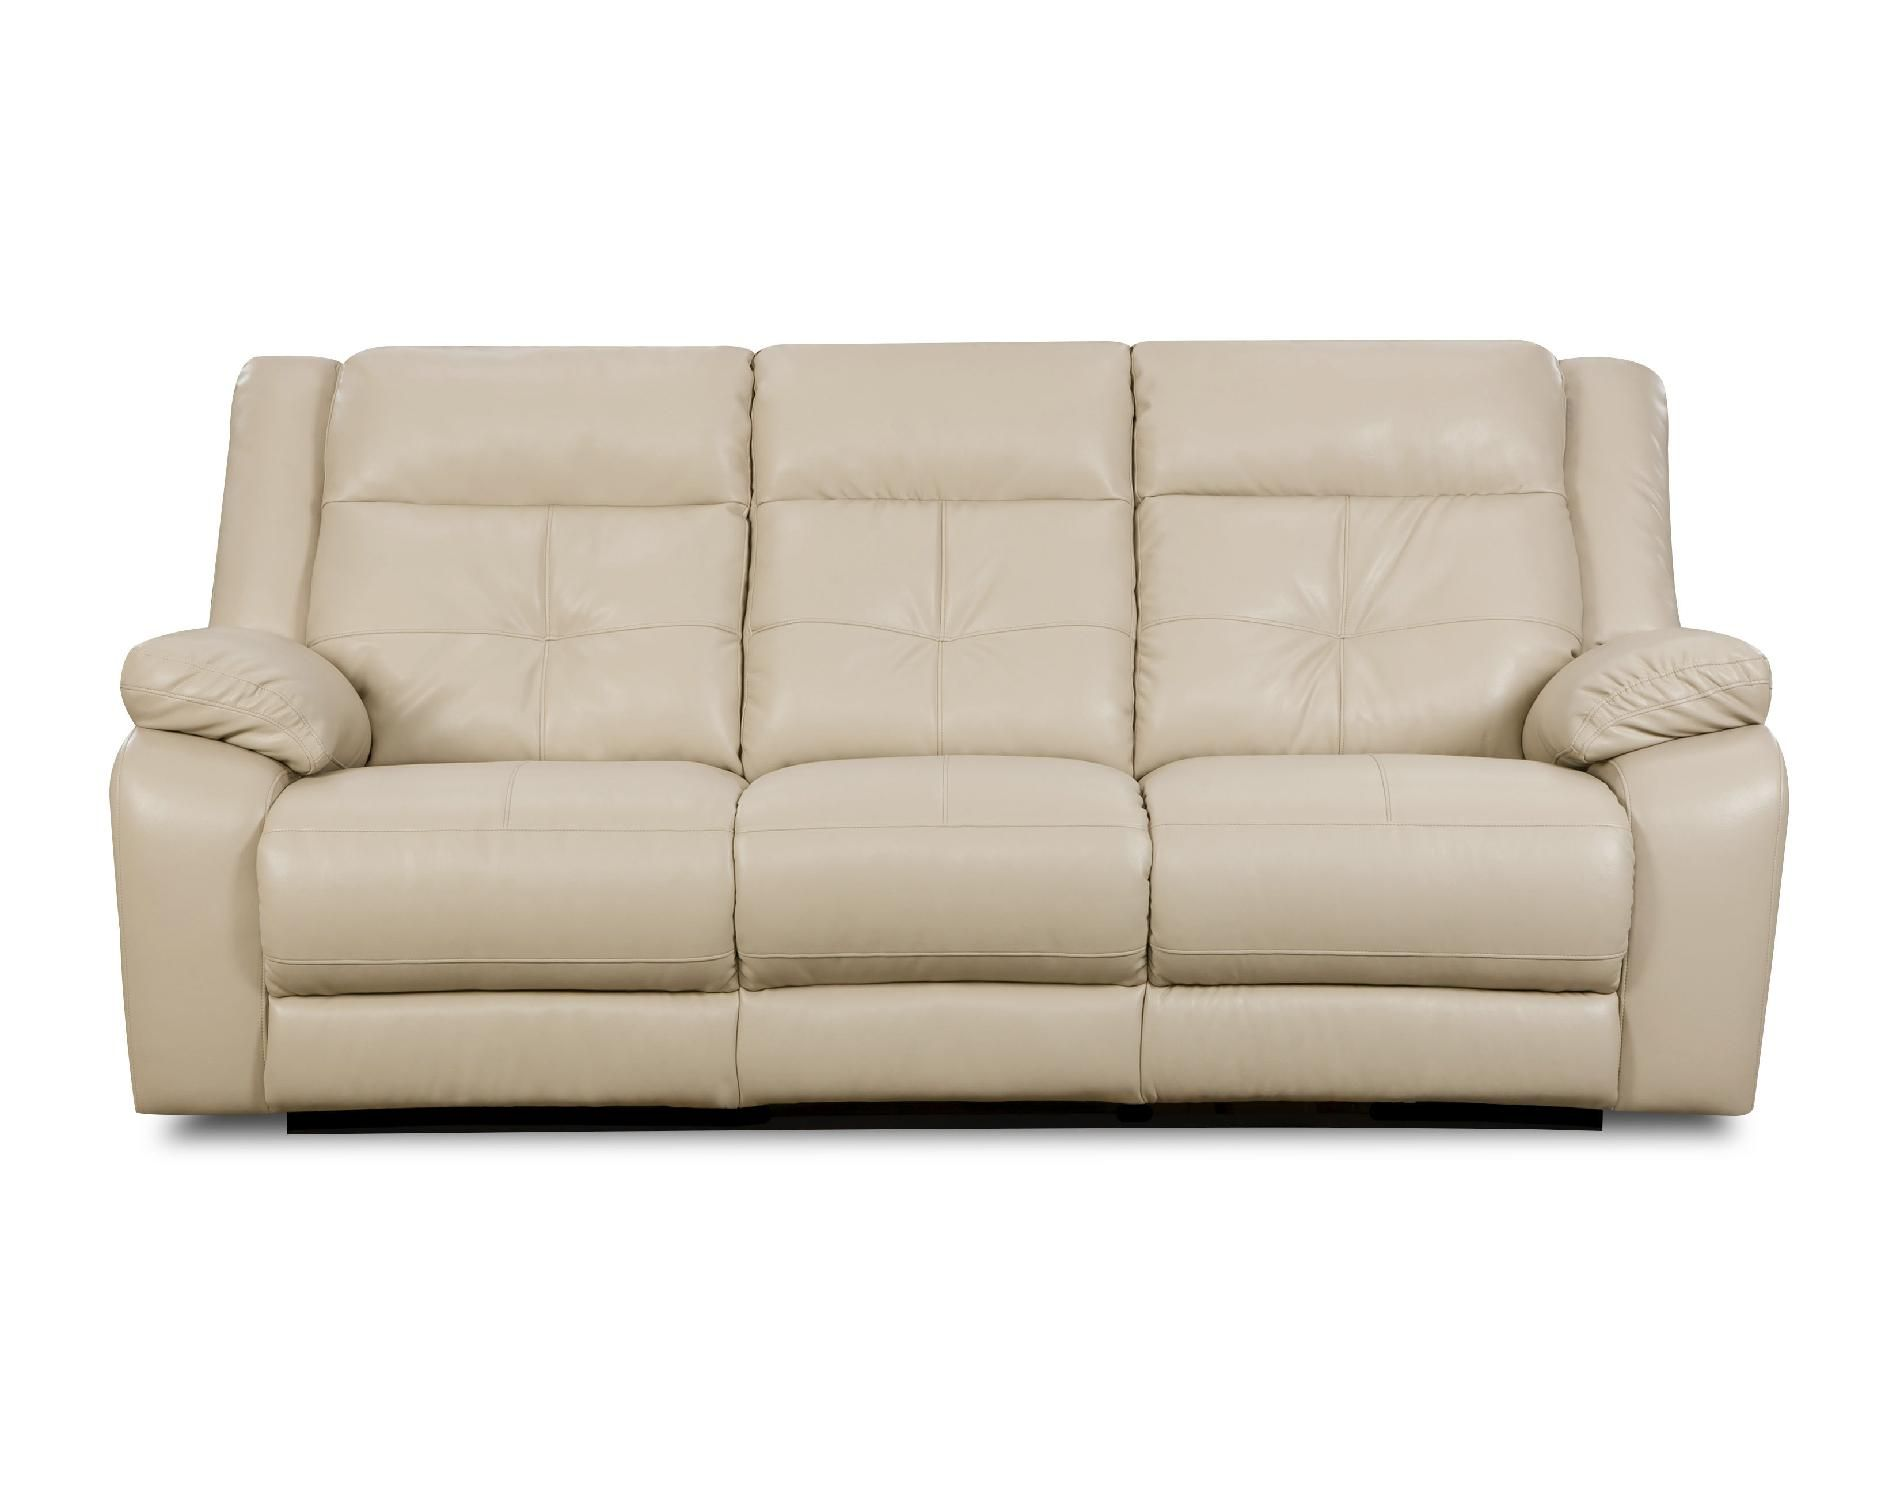 sears outlet store in albuquerque nm 87114 furniture pinterest